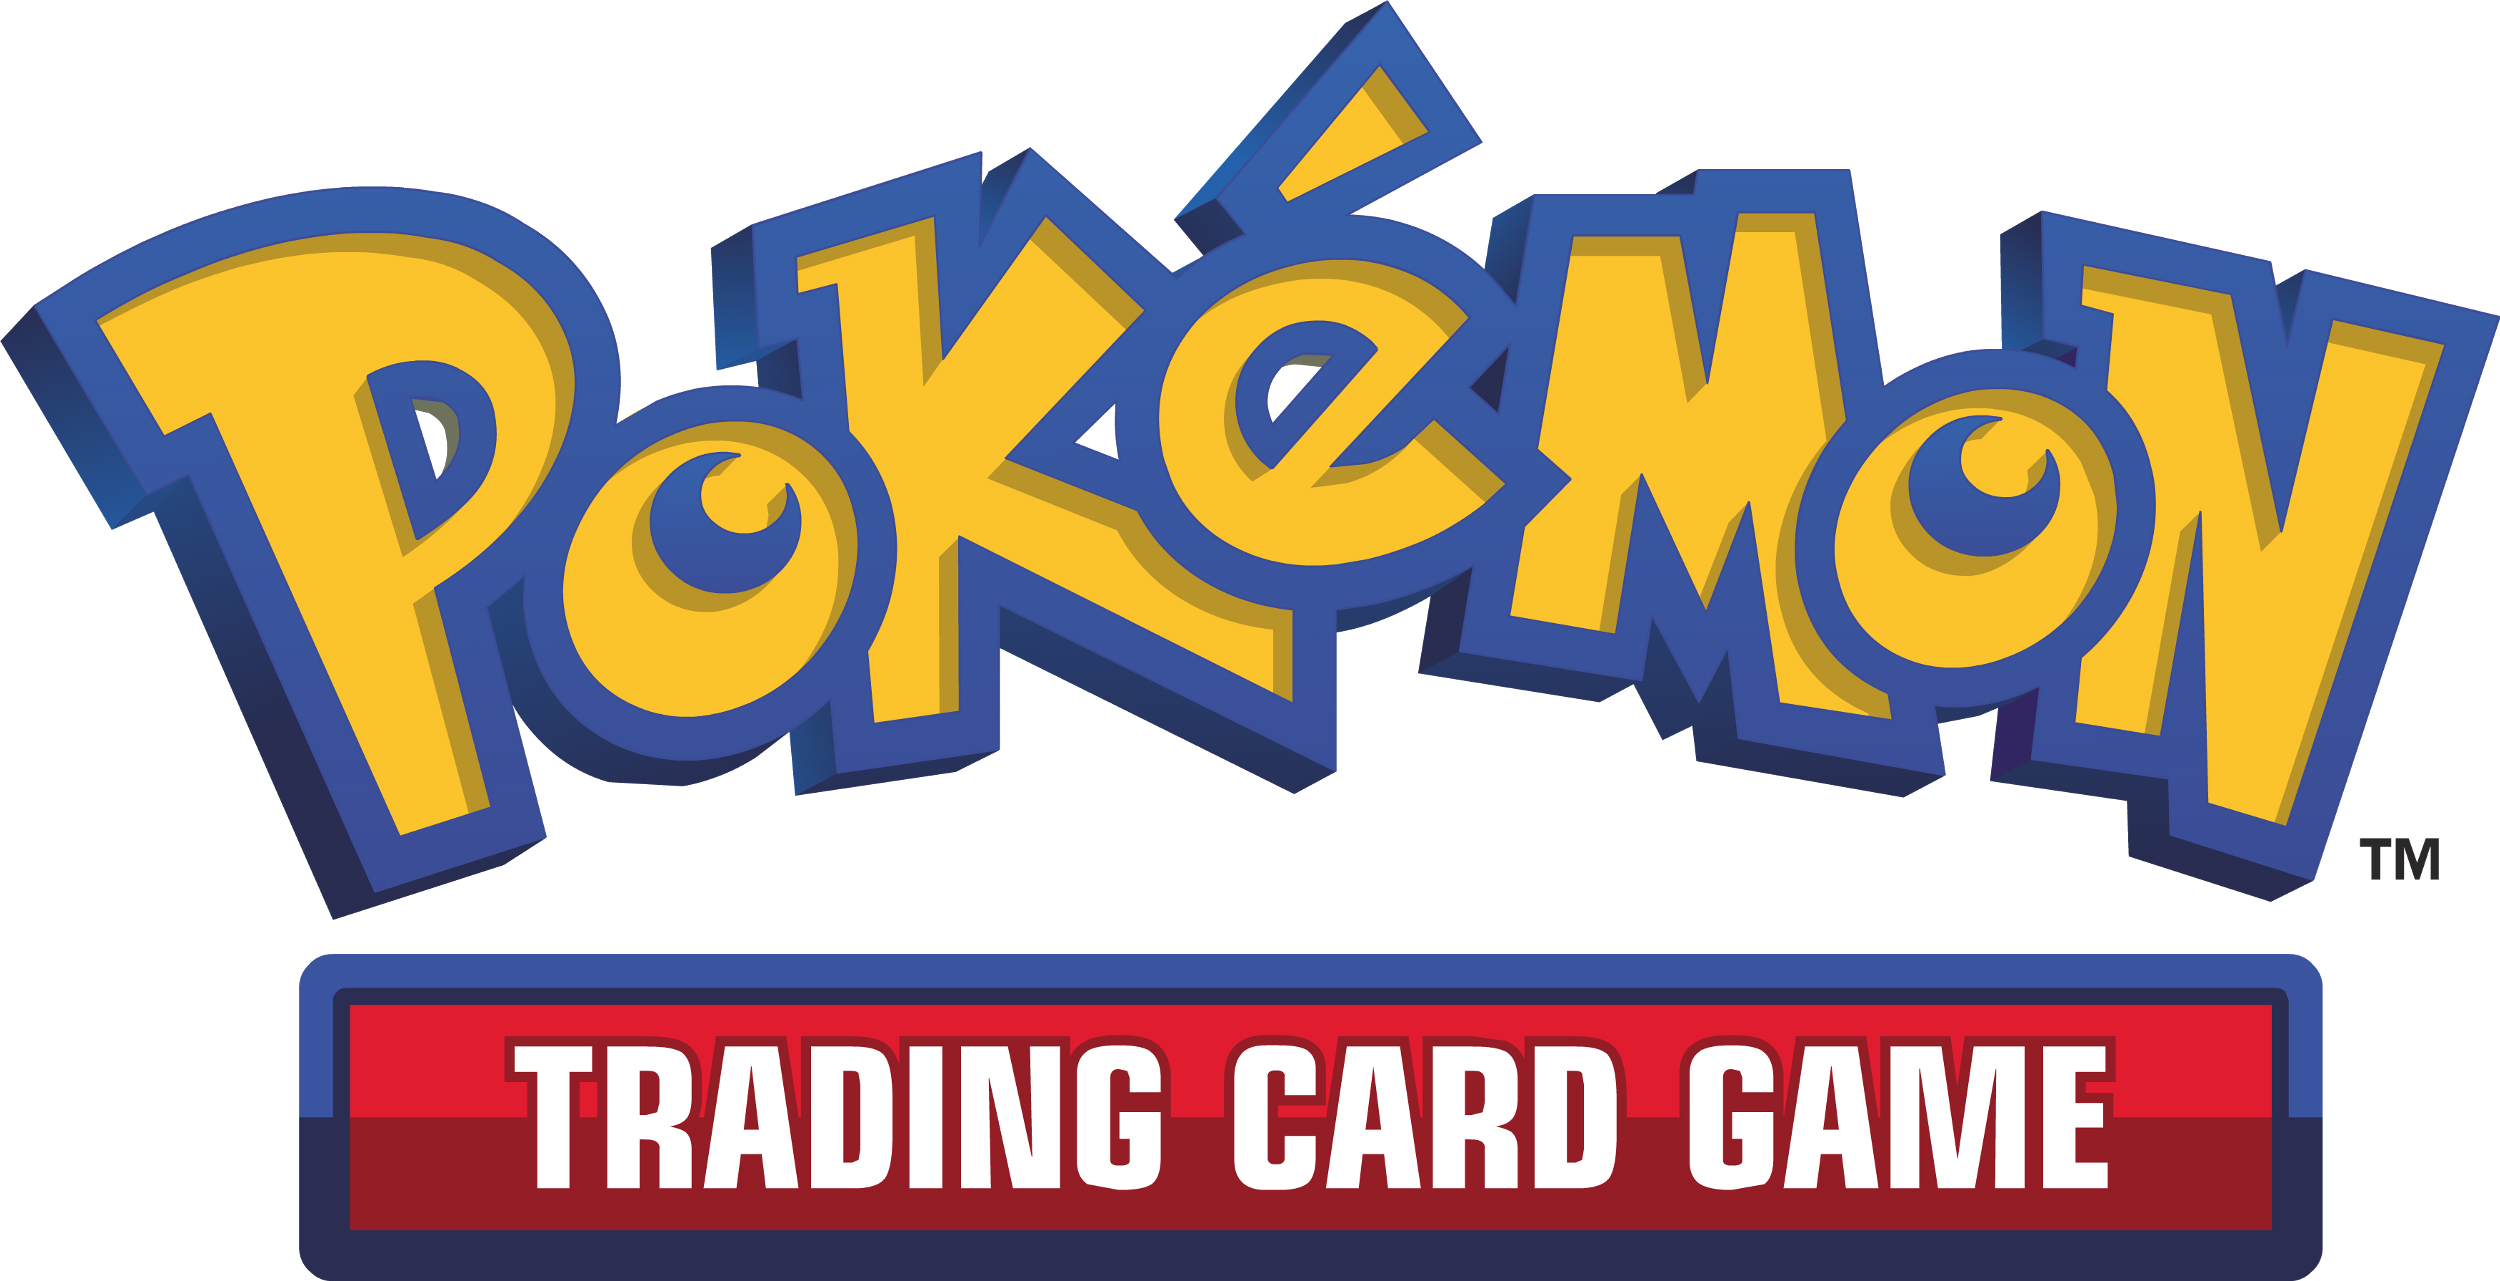 Pokémon League Cup